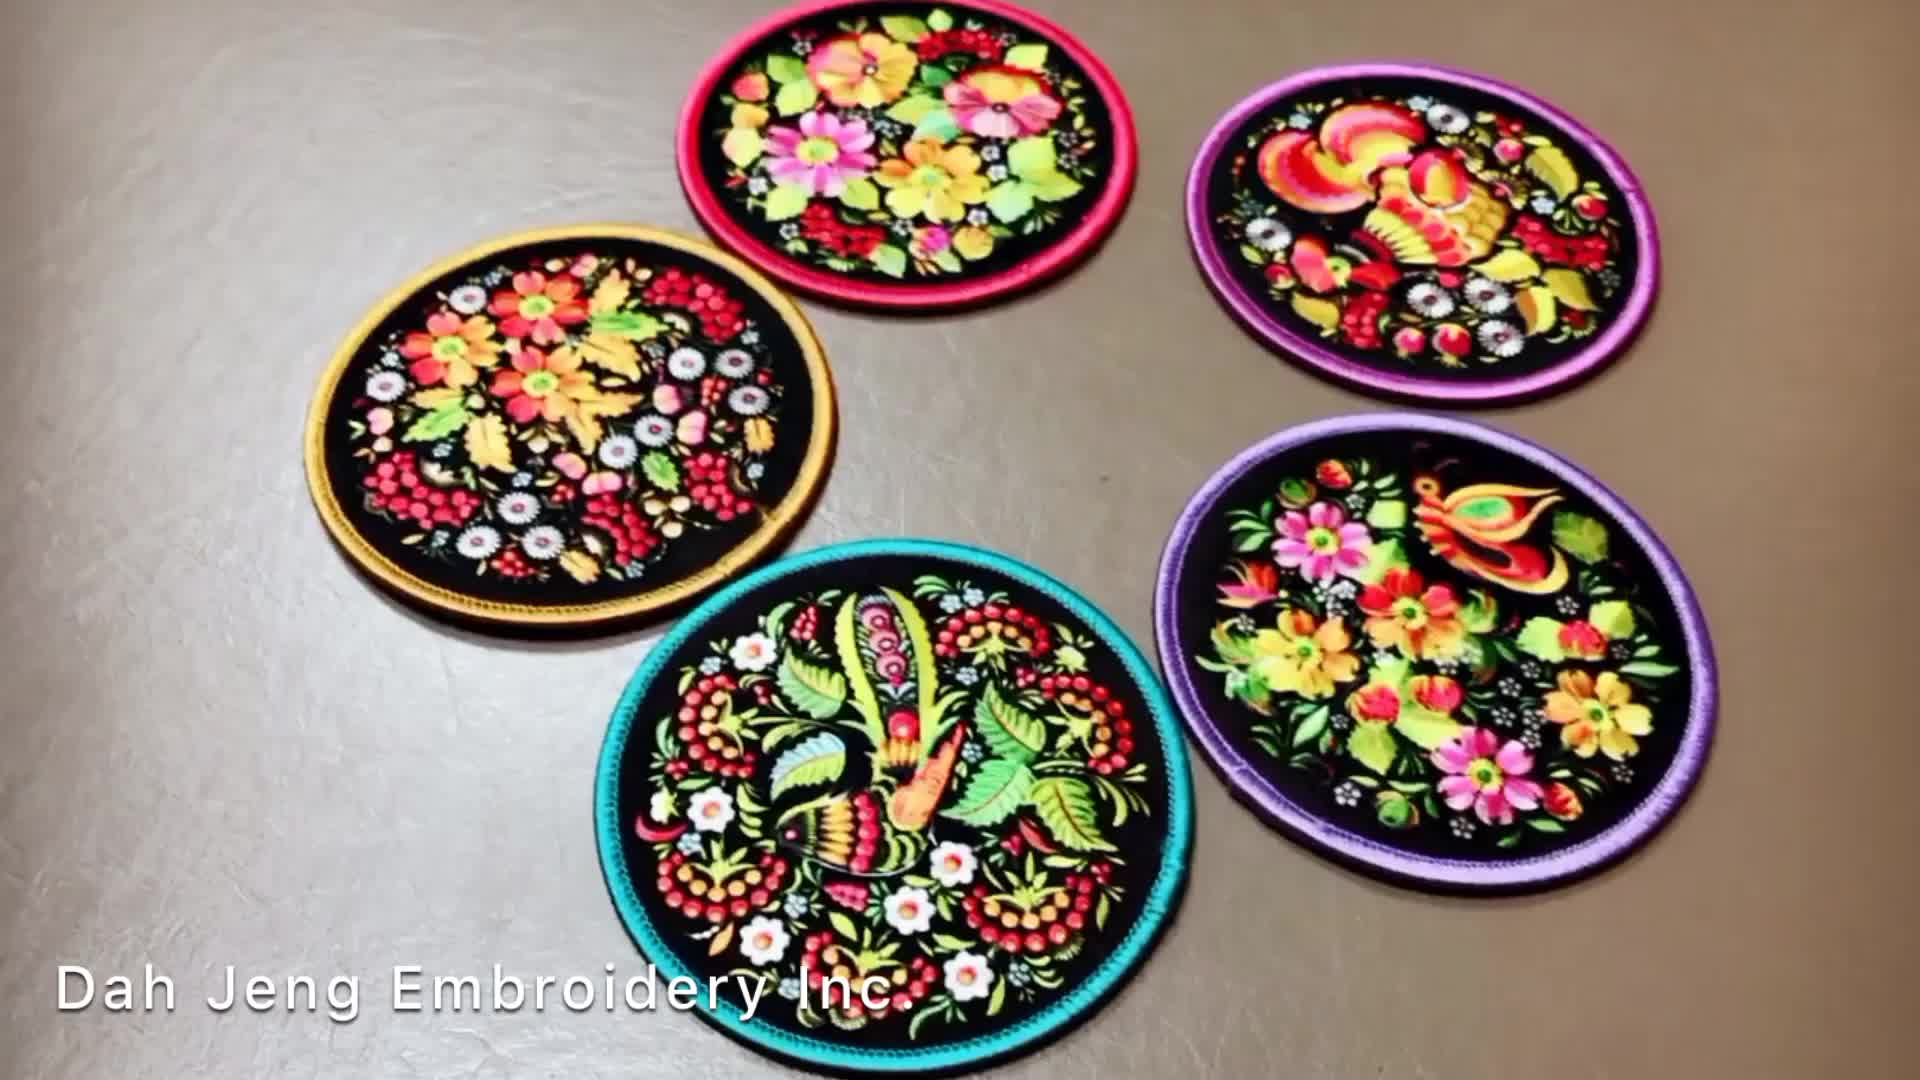 10cm Embroidery Sublimation Printing Flower Design Patch Coaster with silicone dots back